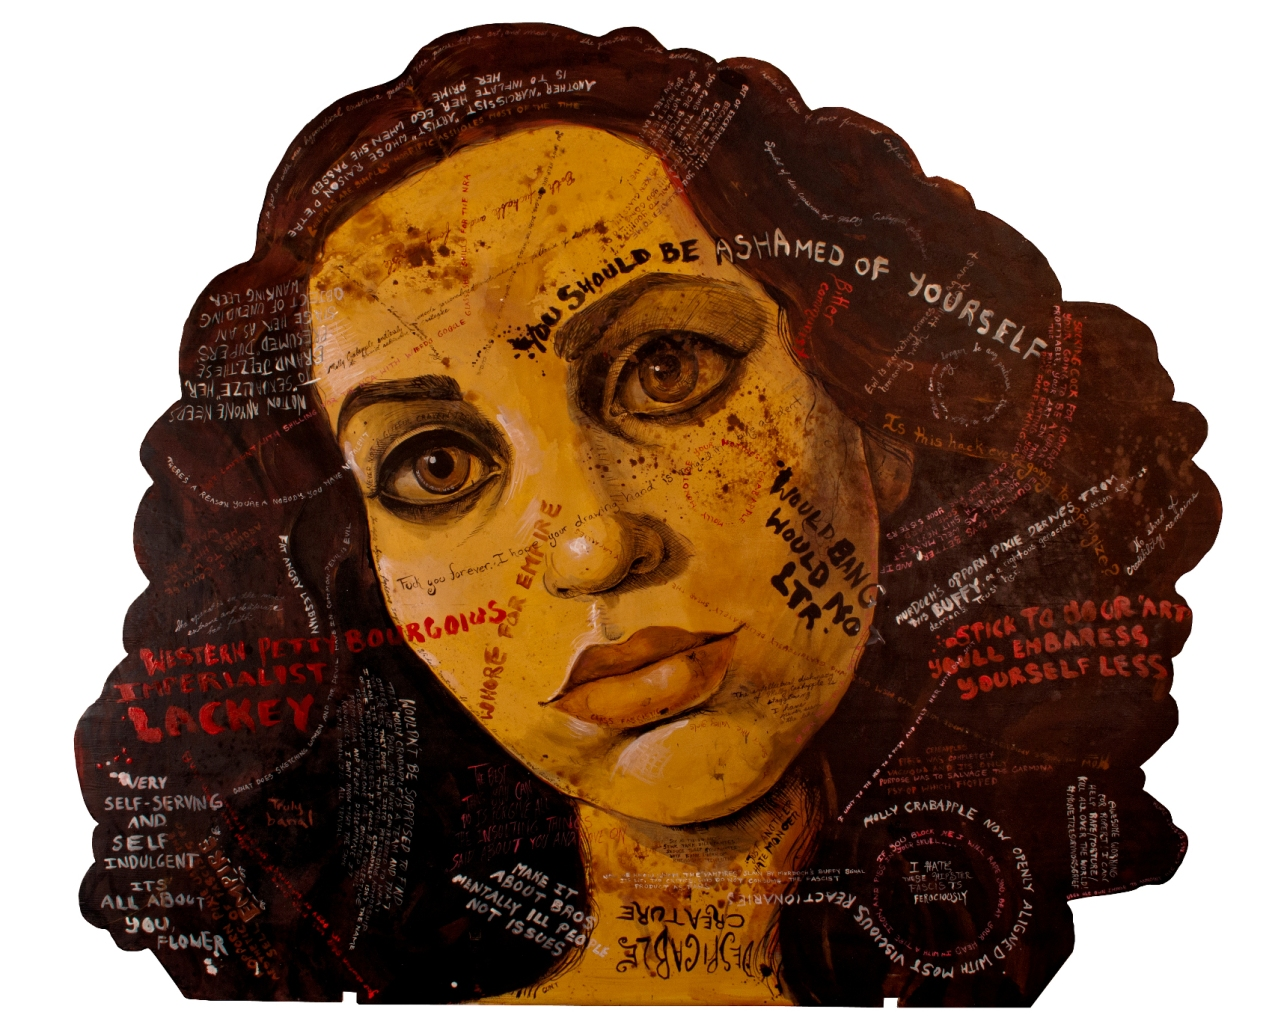 Molly Crabapple self portrait